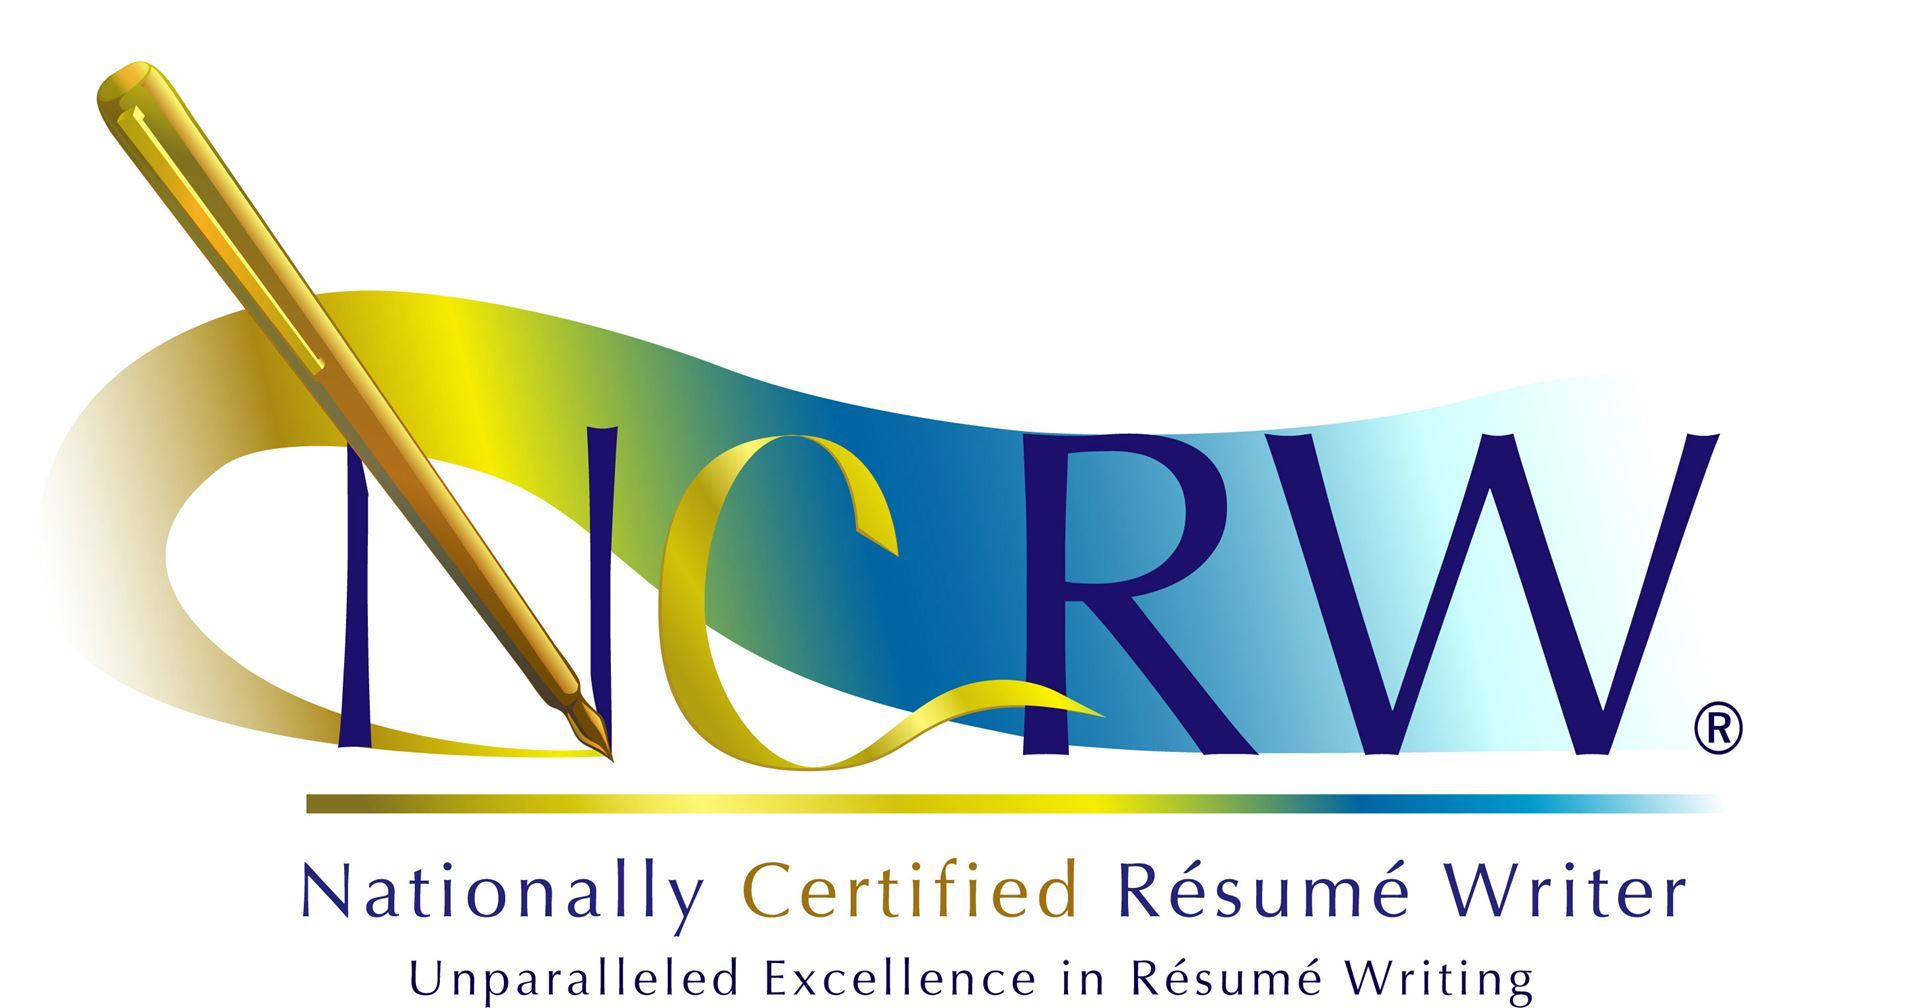 The national rsum writers association find a nationally the national rsum writers association find a nationally certified resume writer altavistaventures Images